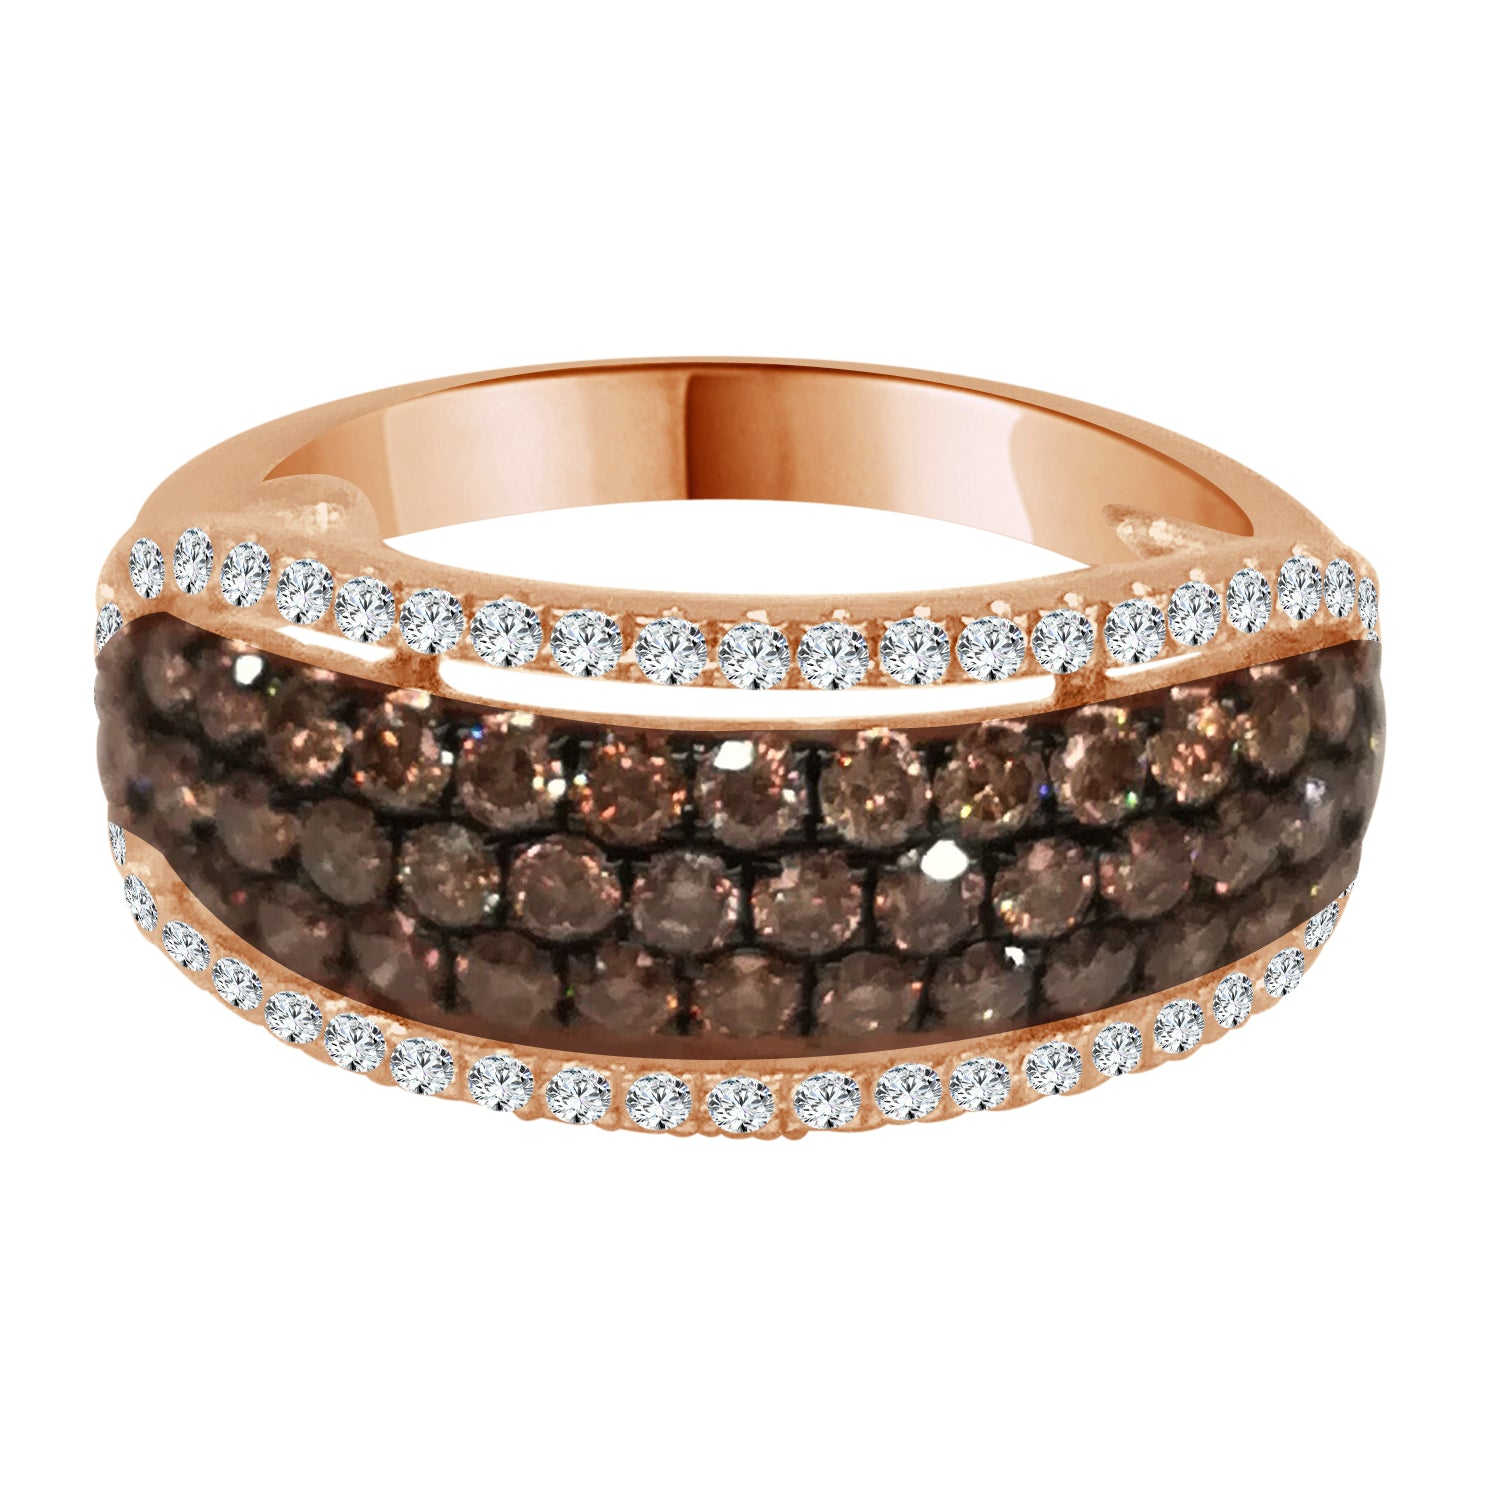 14 Karat Rose Gold 0.24 Carat Diamond Ring